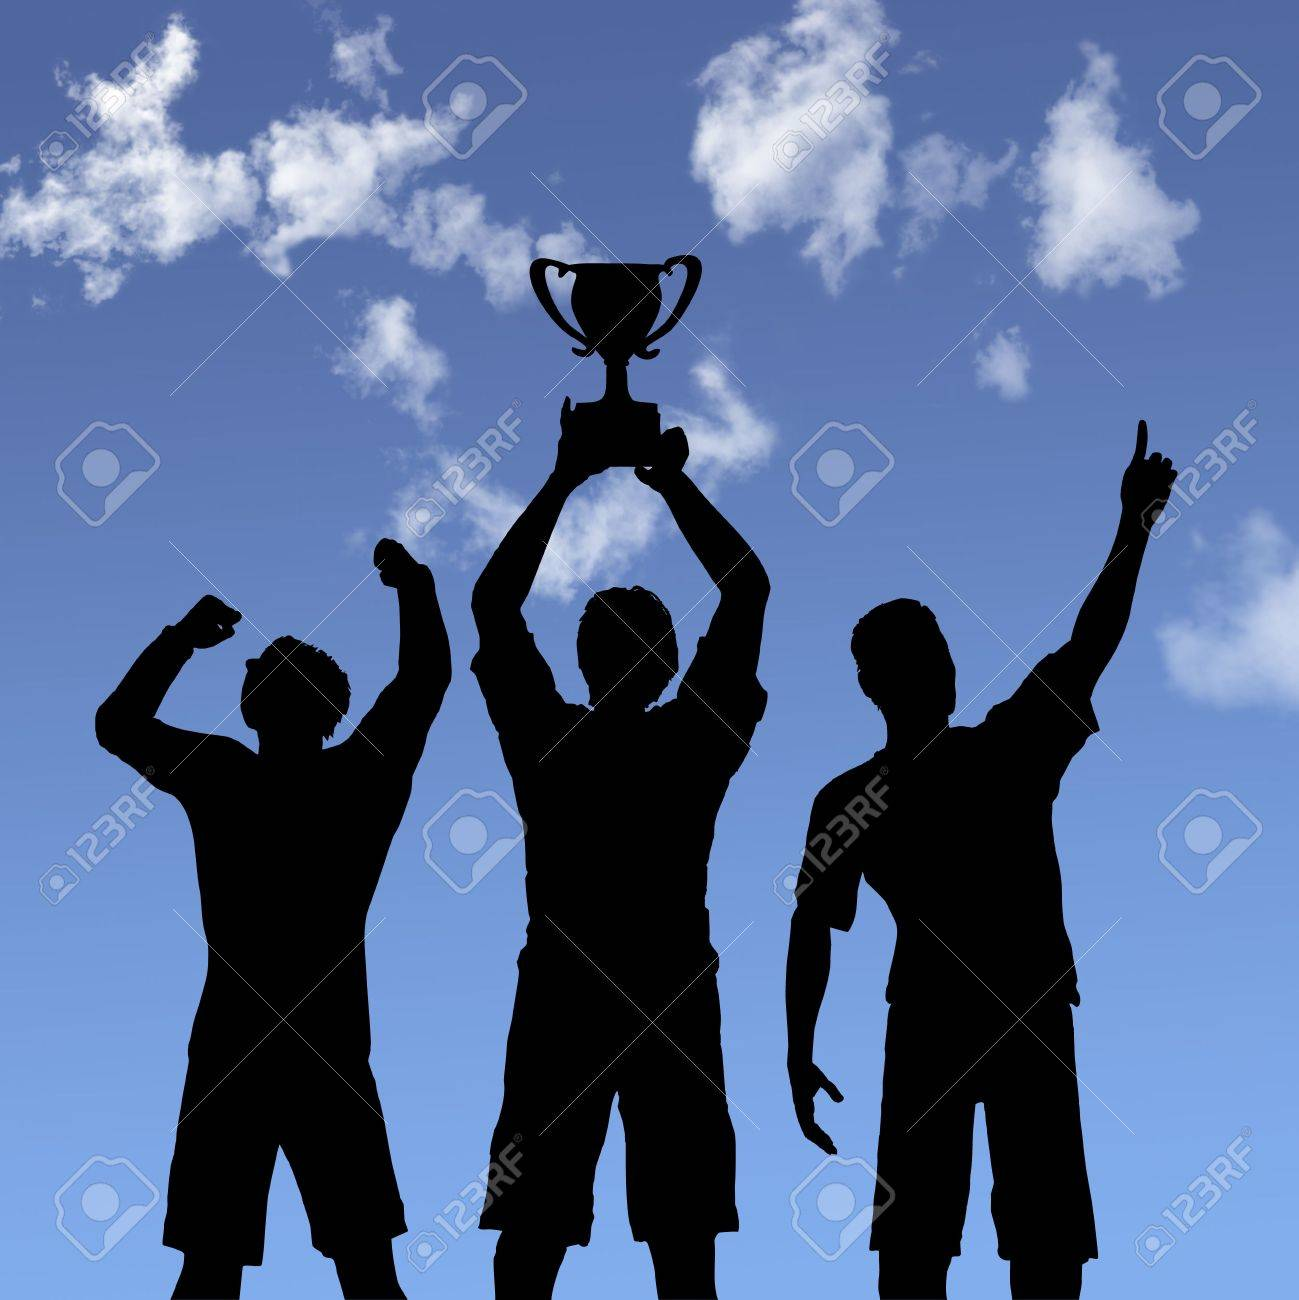 ILLUSTRATION: Silhouettes of team players win a trophy and celebrate business victory against a blue sky. Stock Illustration - 2186654